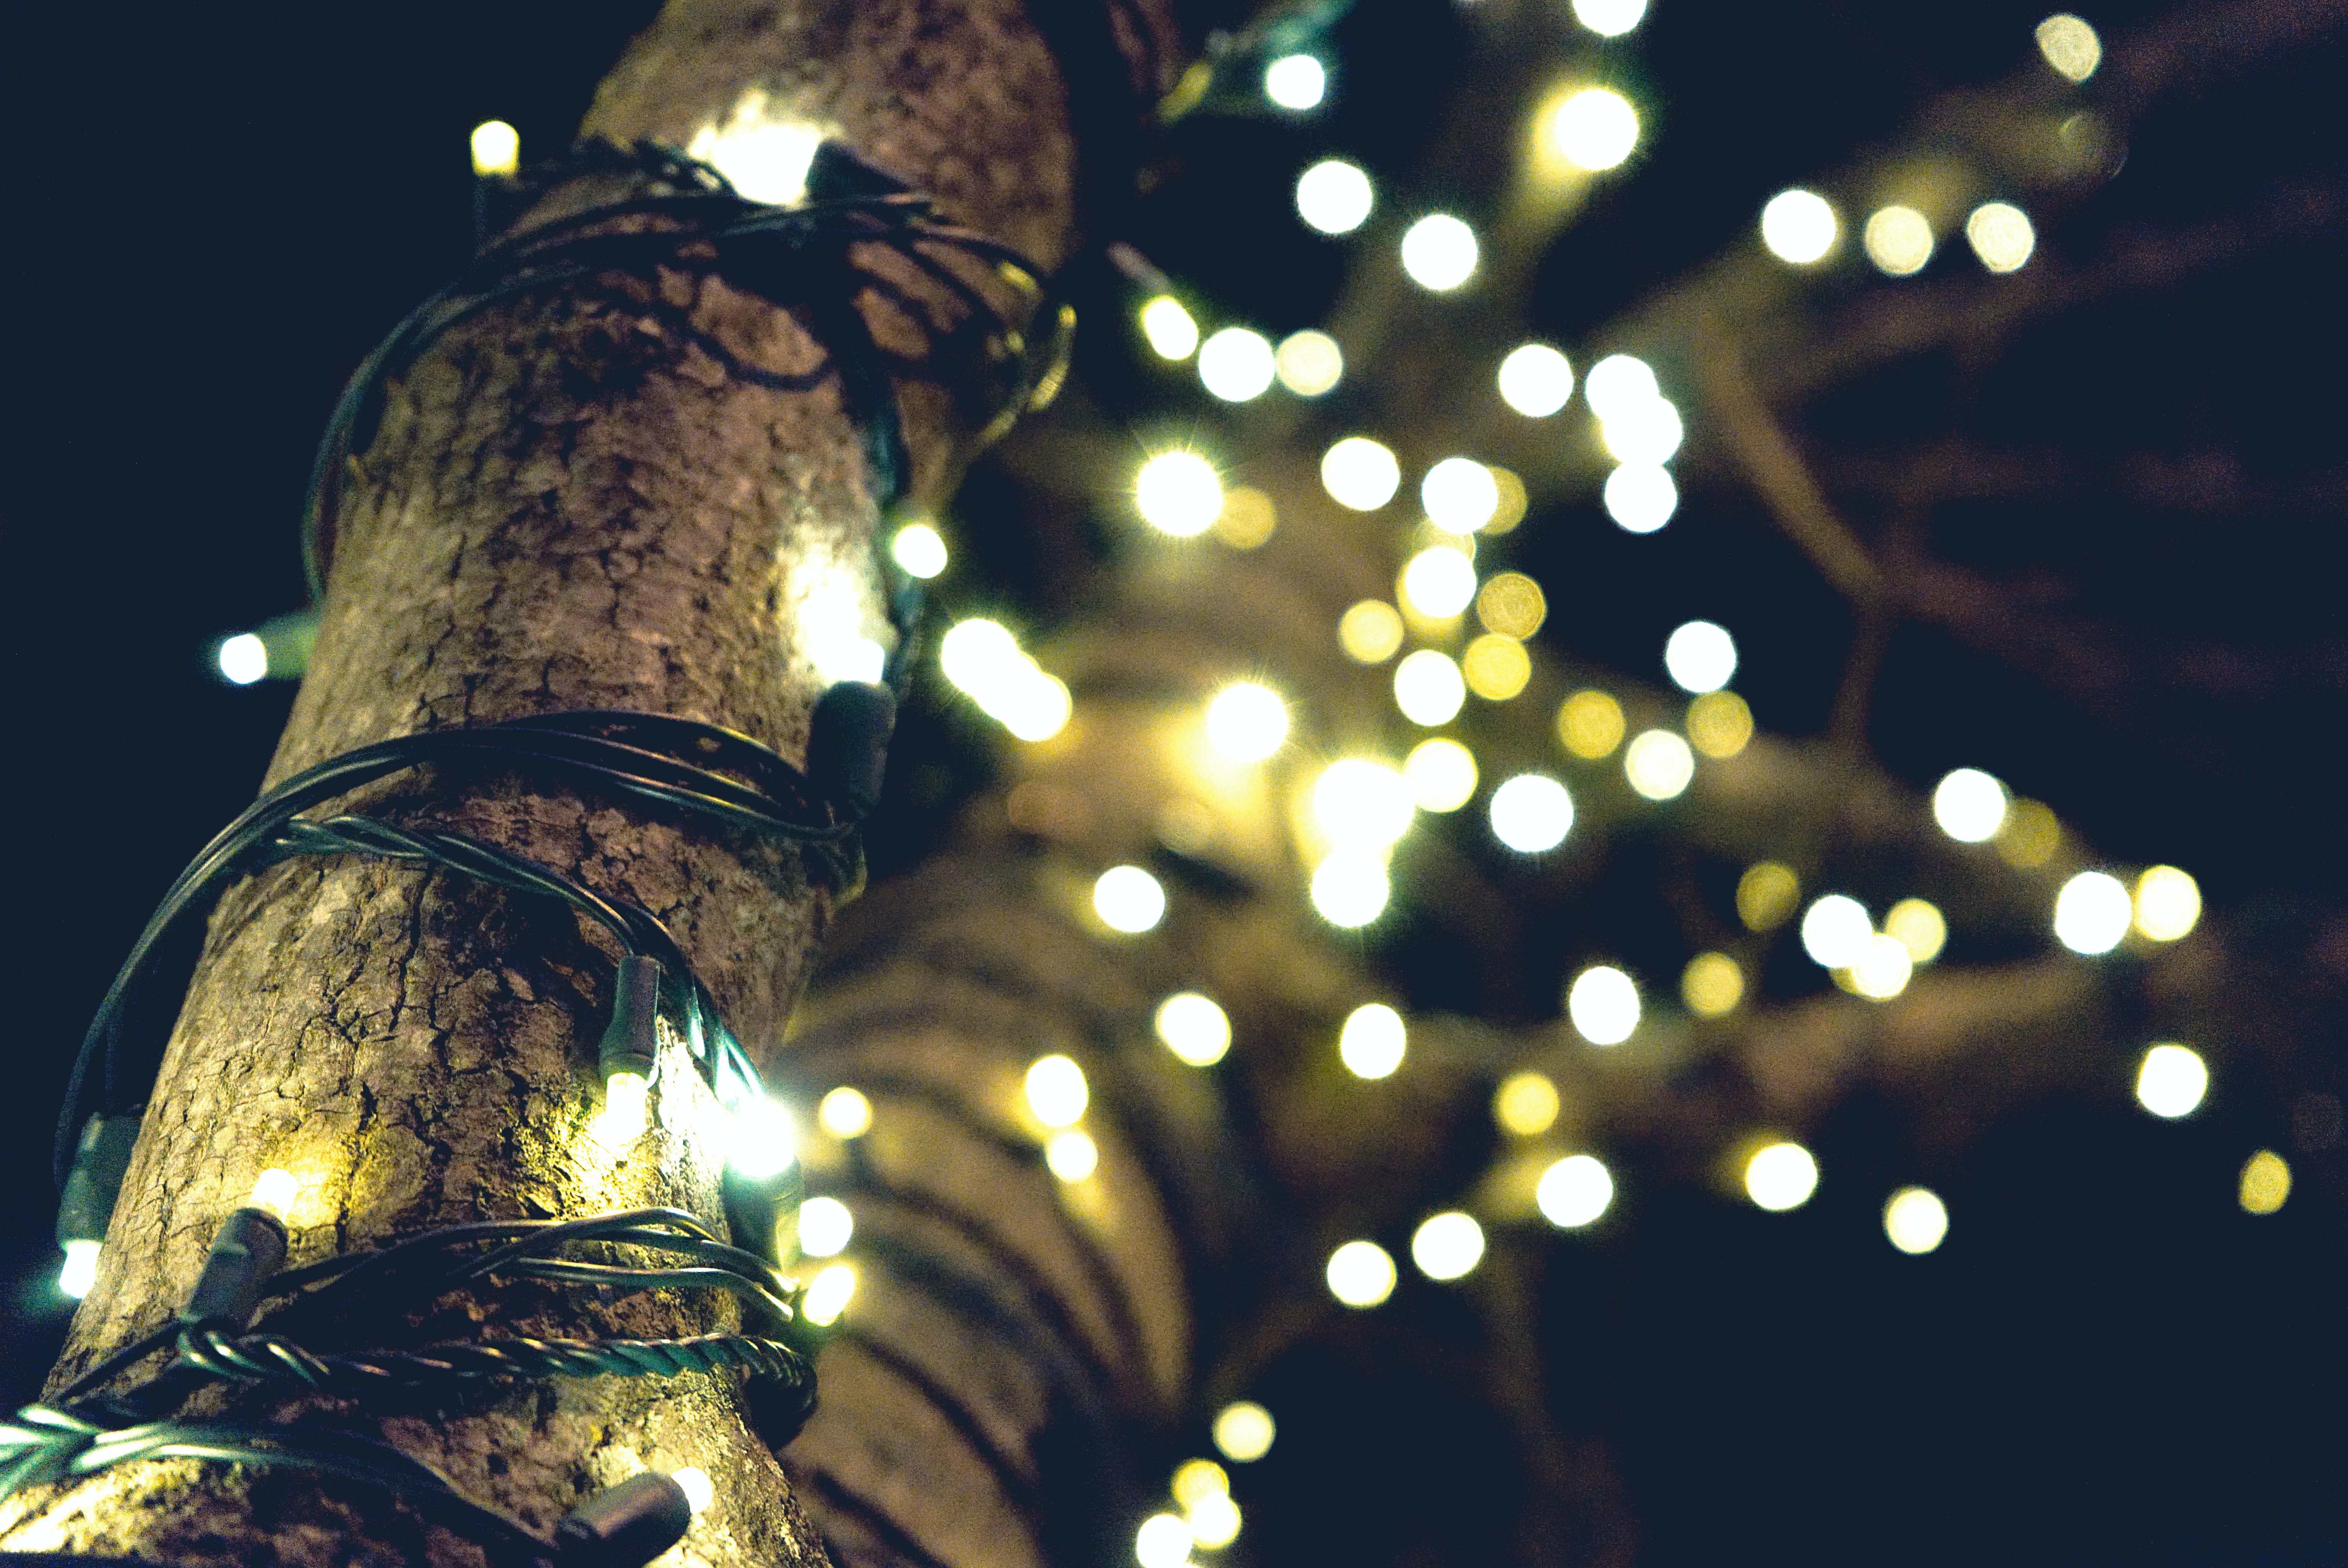 related searches christmas lights christmas tree blur background - Christmas Light Pictures